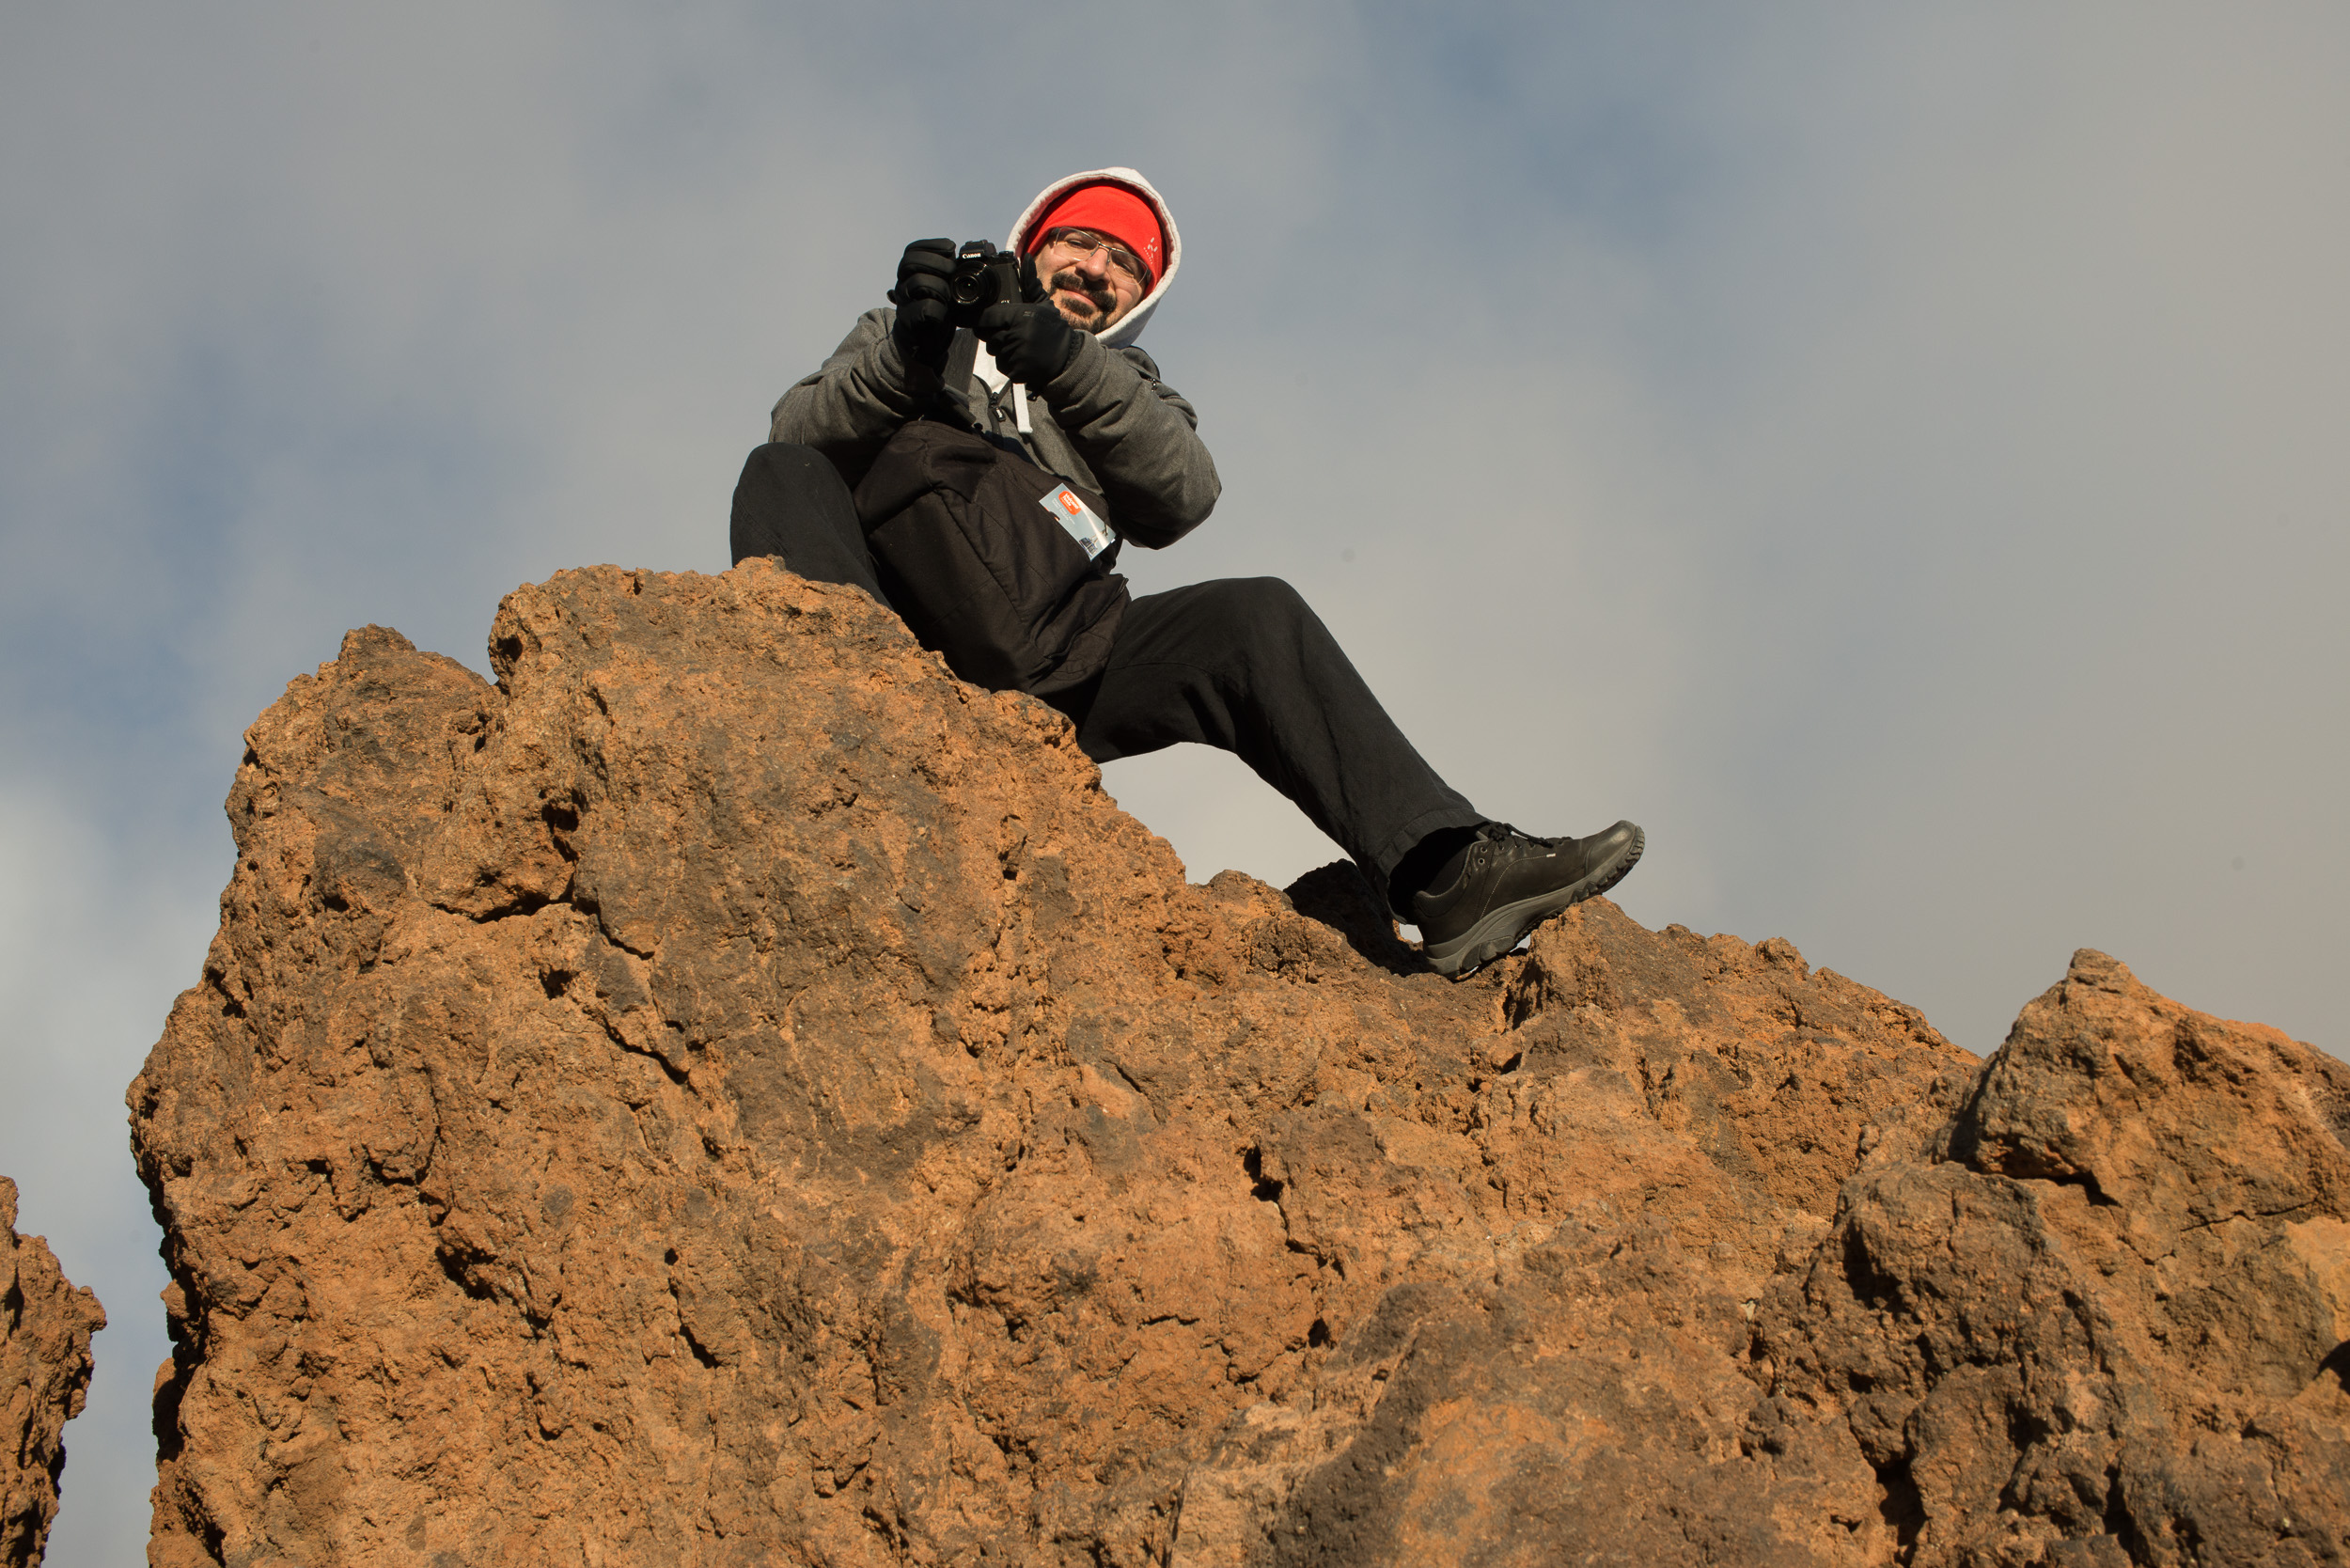 Here I am on the top of a rock to have a higher view to take photos. I definitely wouldn't do this carrying any heavy camera. You can't hardly see the camera in my hands in this photos, because it's so small that it's almost hidden between my gloves.:D Photo: Mikko Lyytikäinen